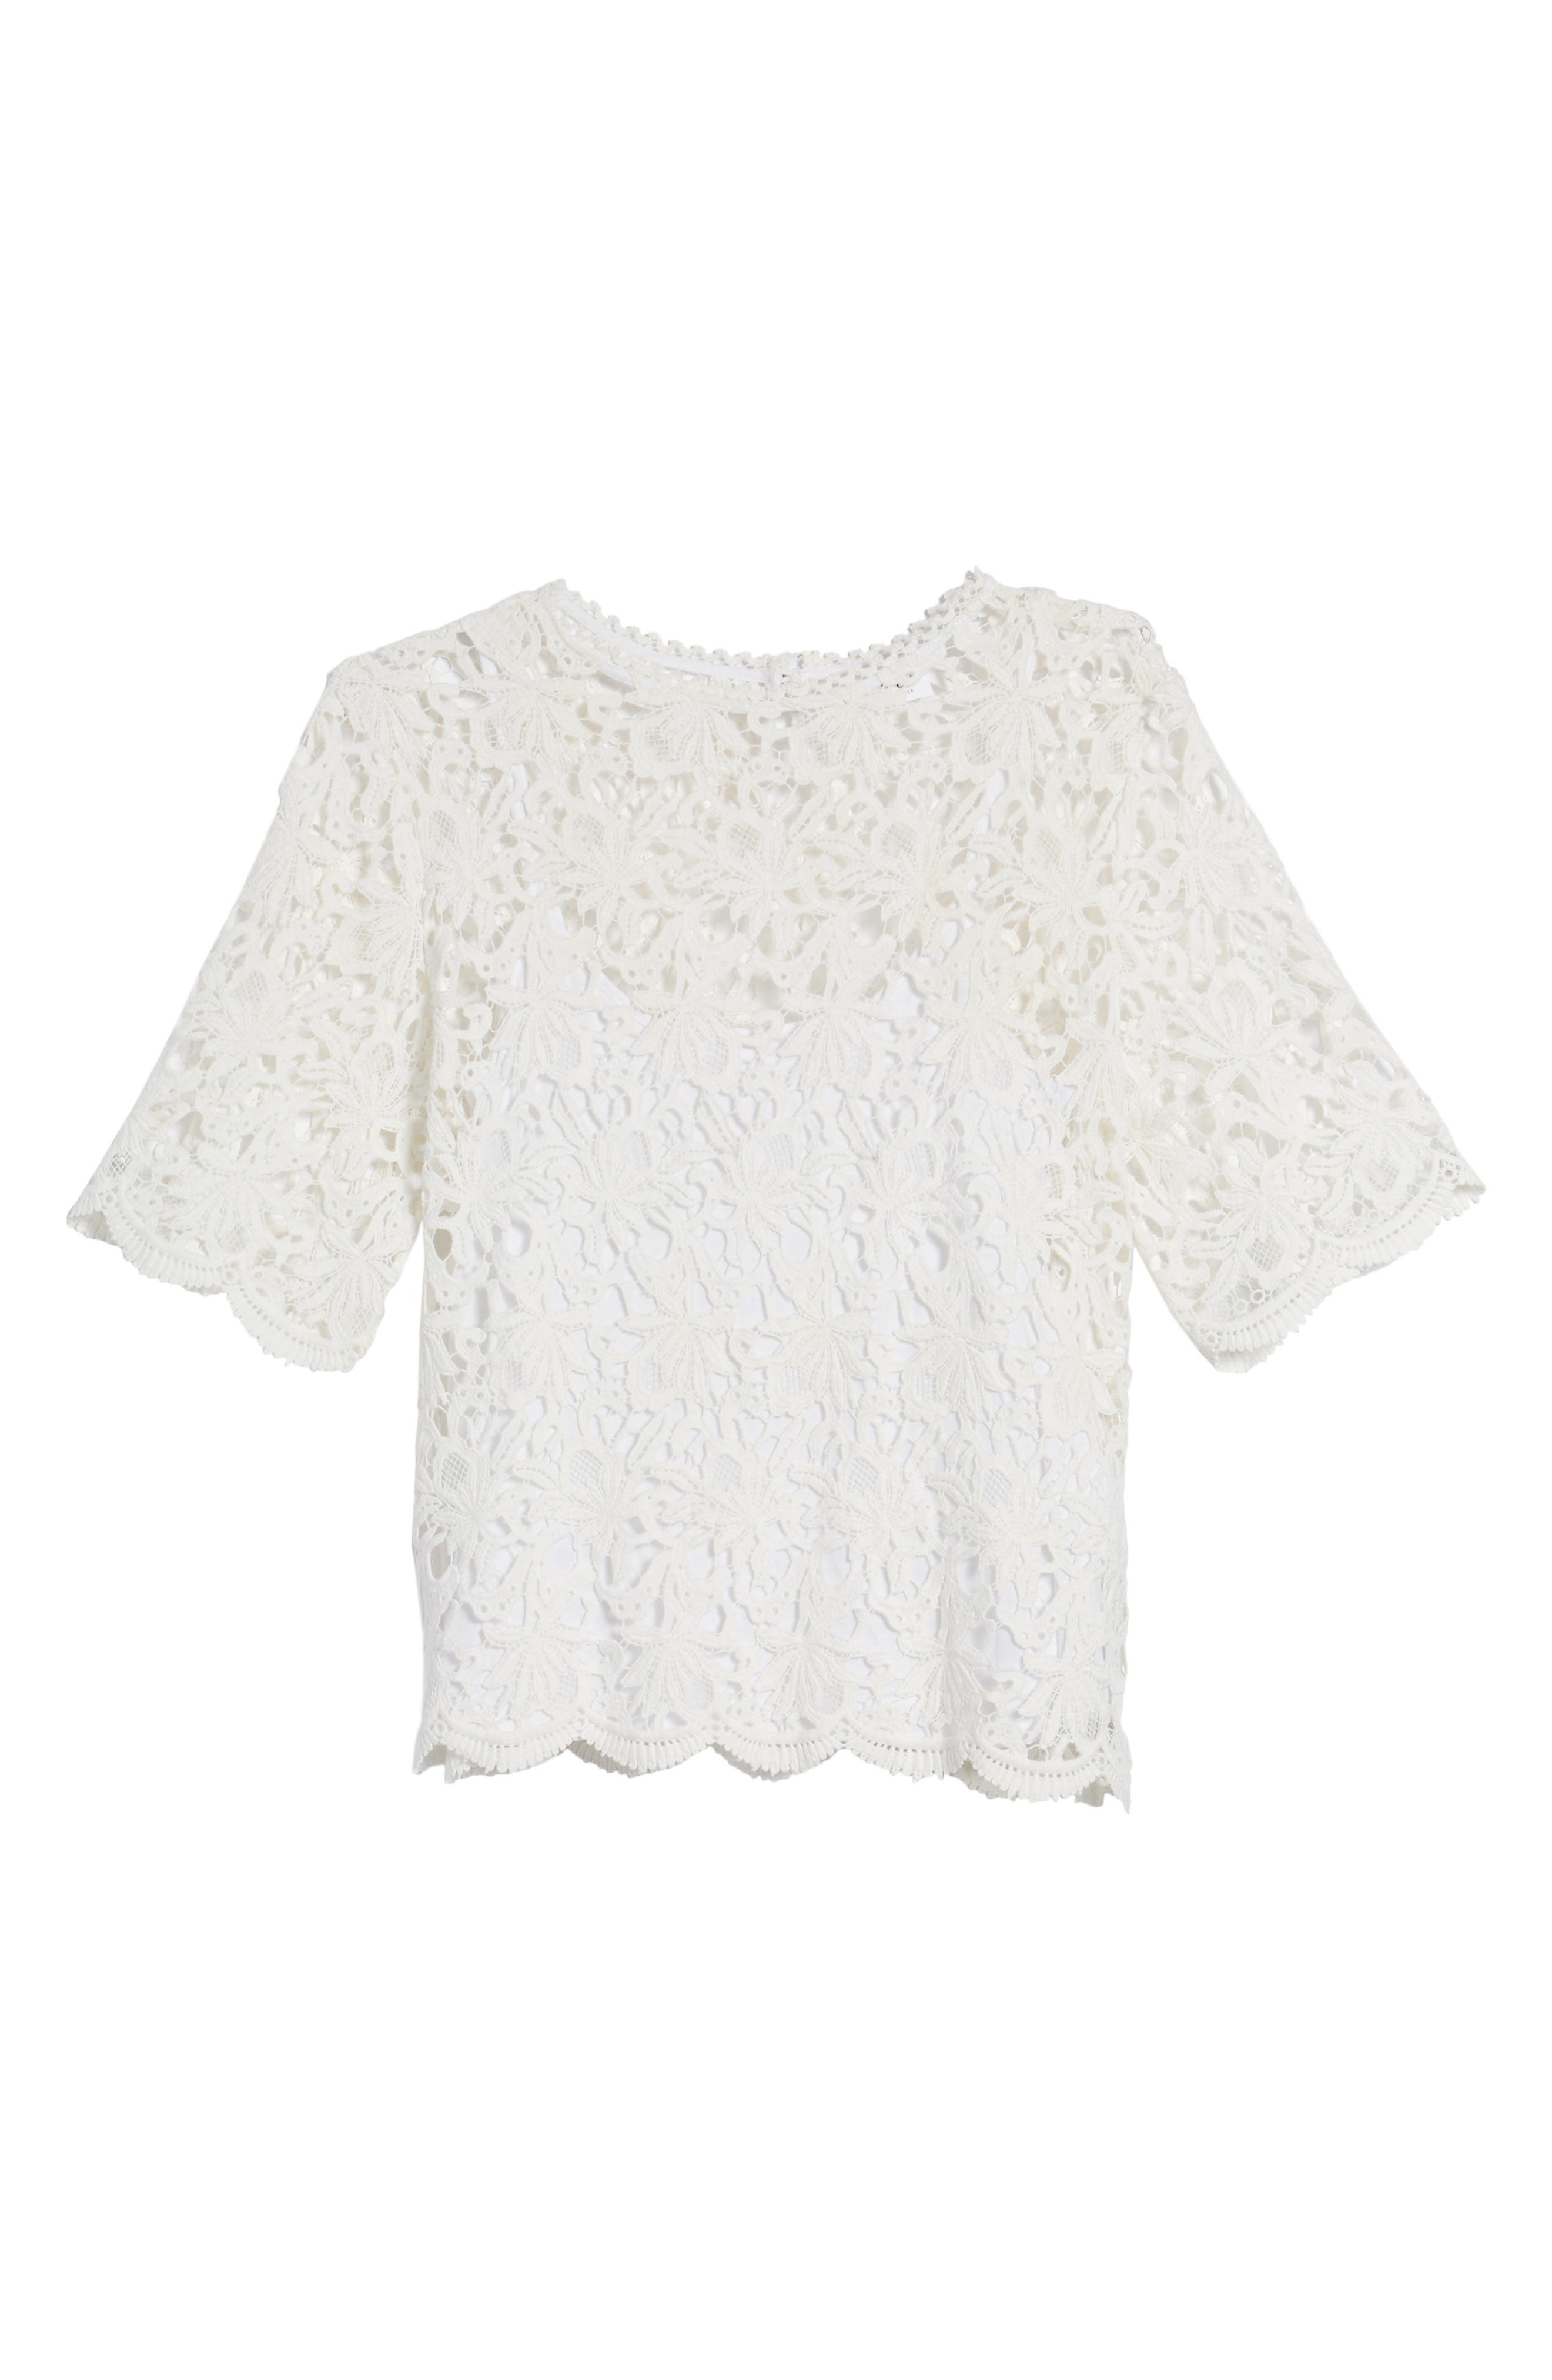 Lace Elbow Sleeve Blouse,                             Alternate thumbnail 11, color,